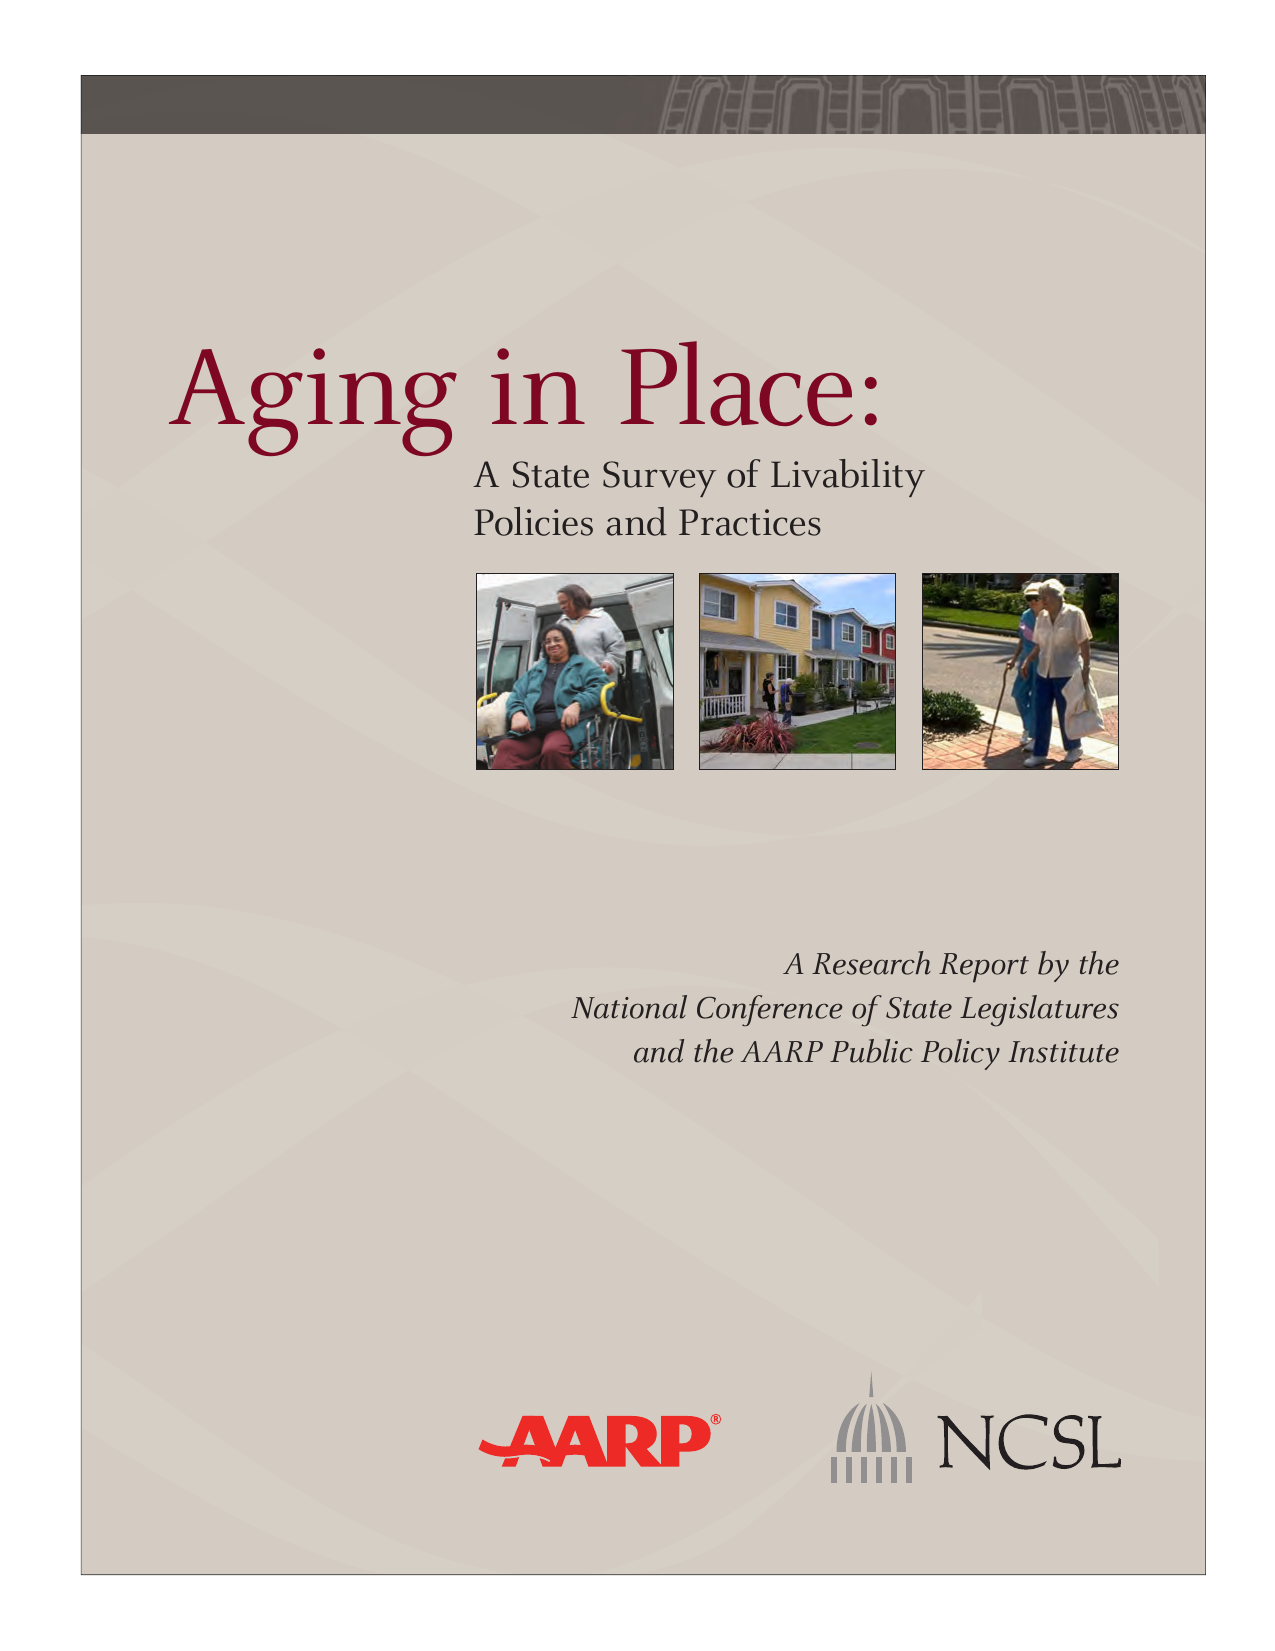 Aging in Place: A State Survey of Livability Policies and